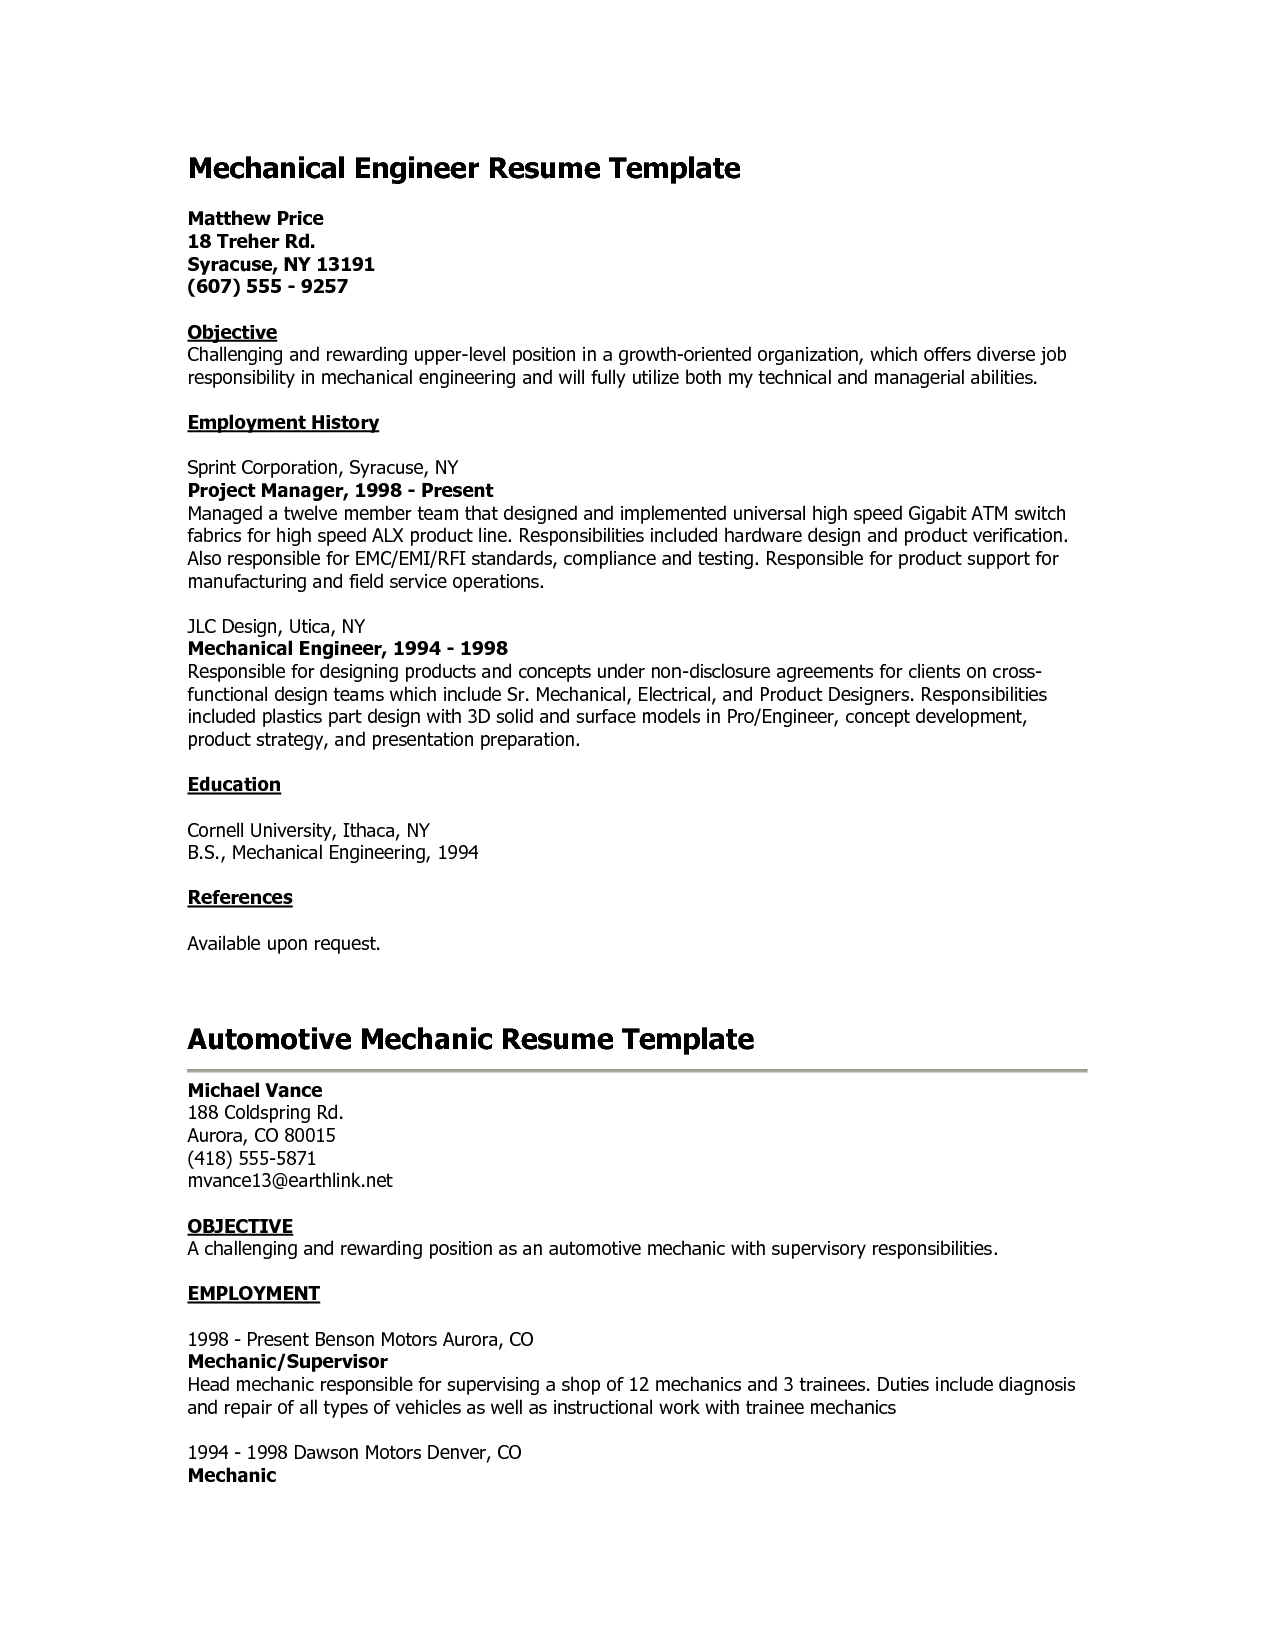 teller resume with no experience sample resume for bank teller with no experience sample - Head Teller Resume